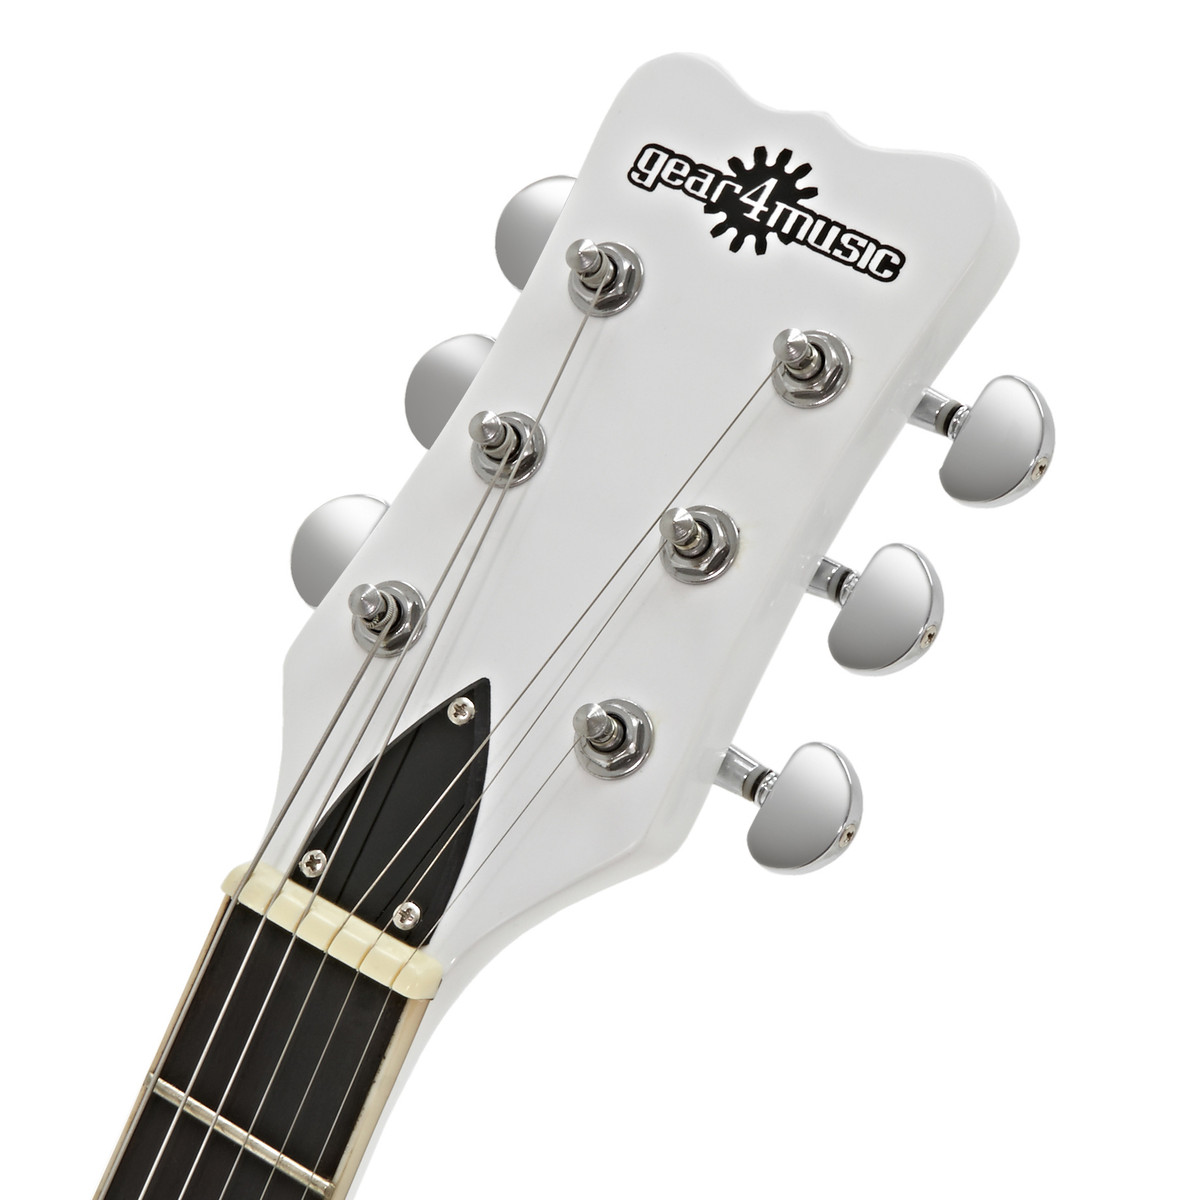 disc new jersey electric guitar by gear4music white b stock at gear4music. Black Bedroom Furniture Sets. Home Design Ideas